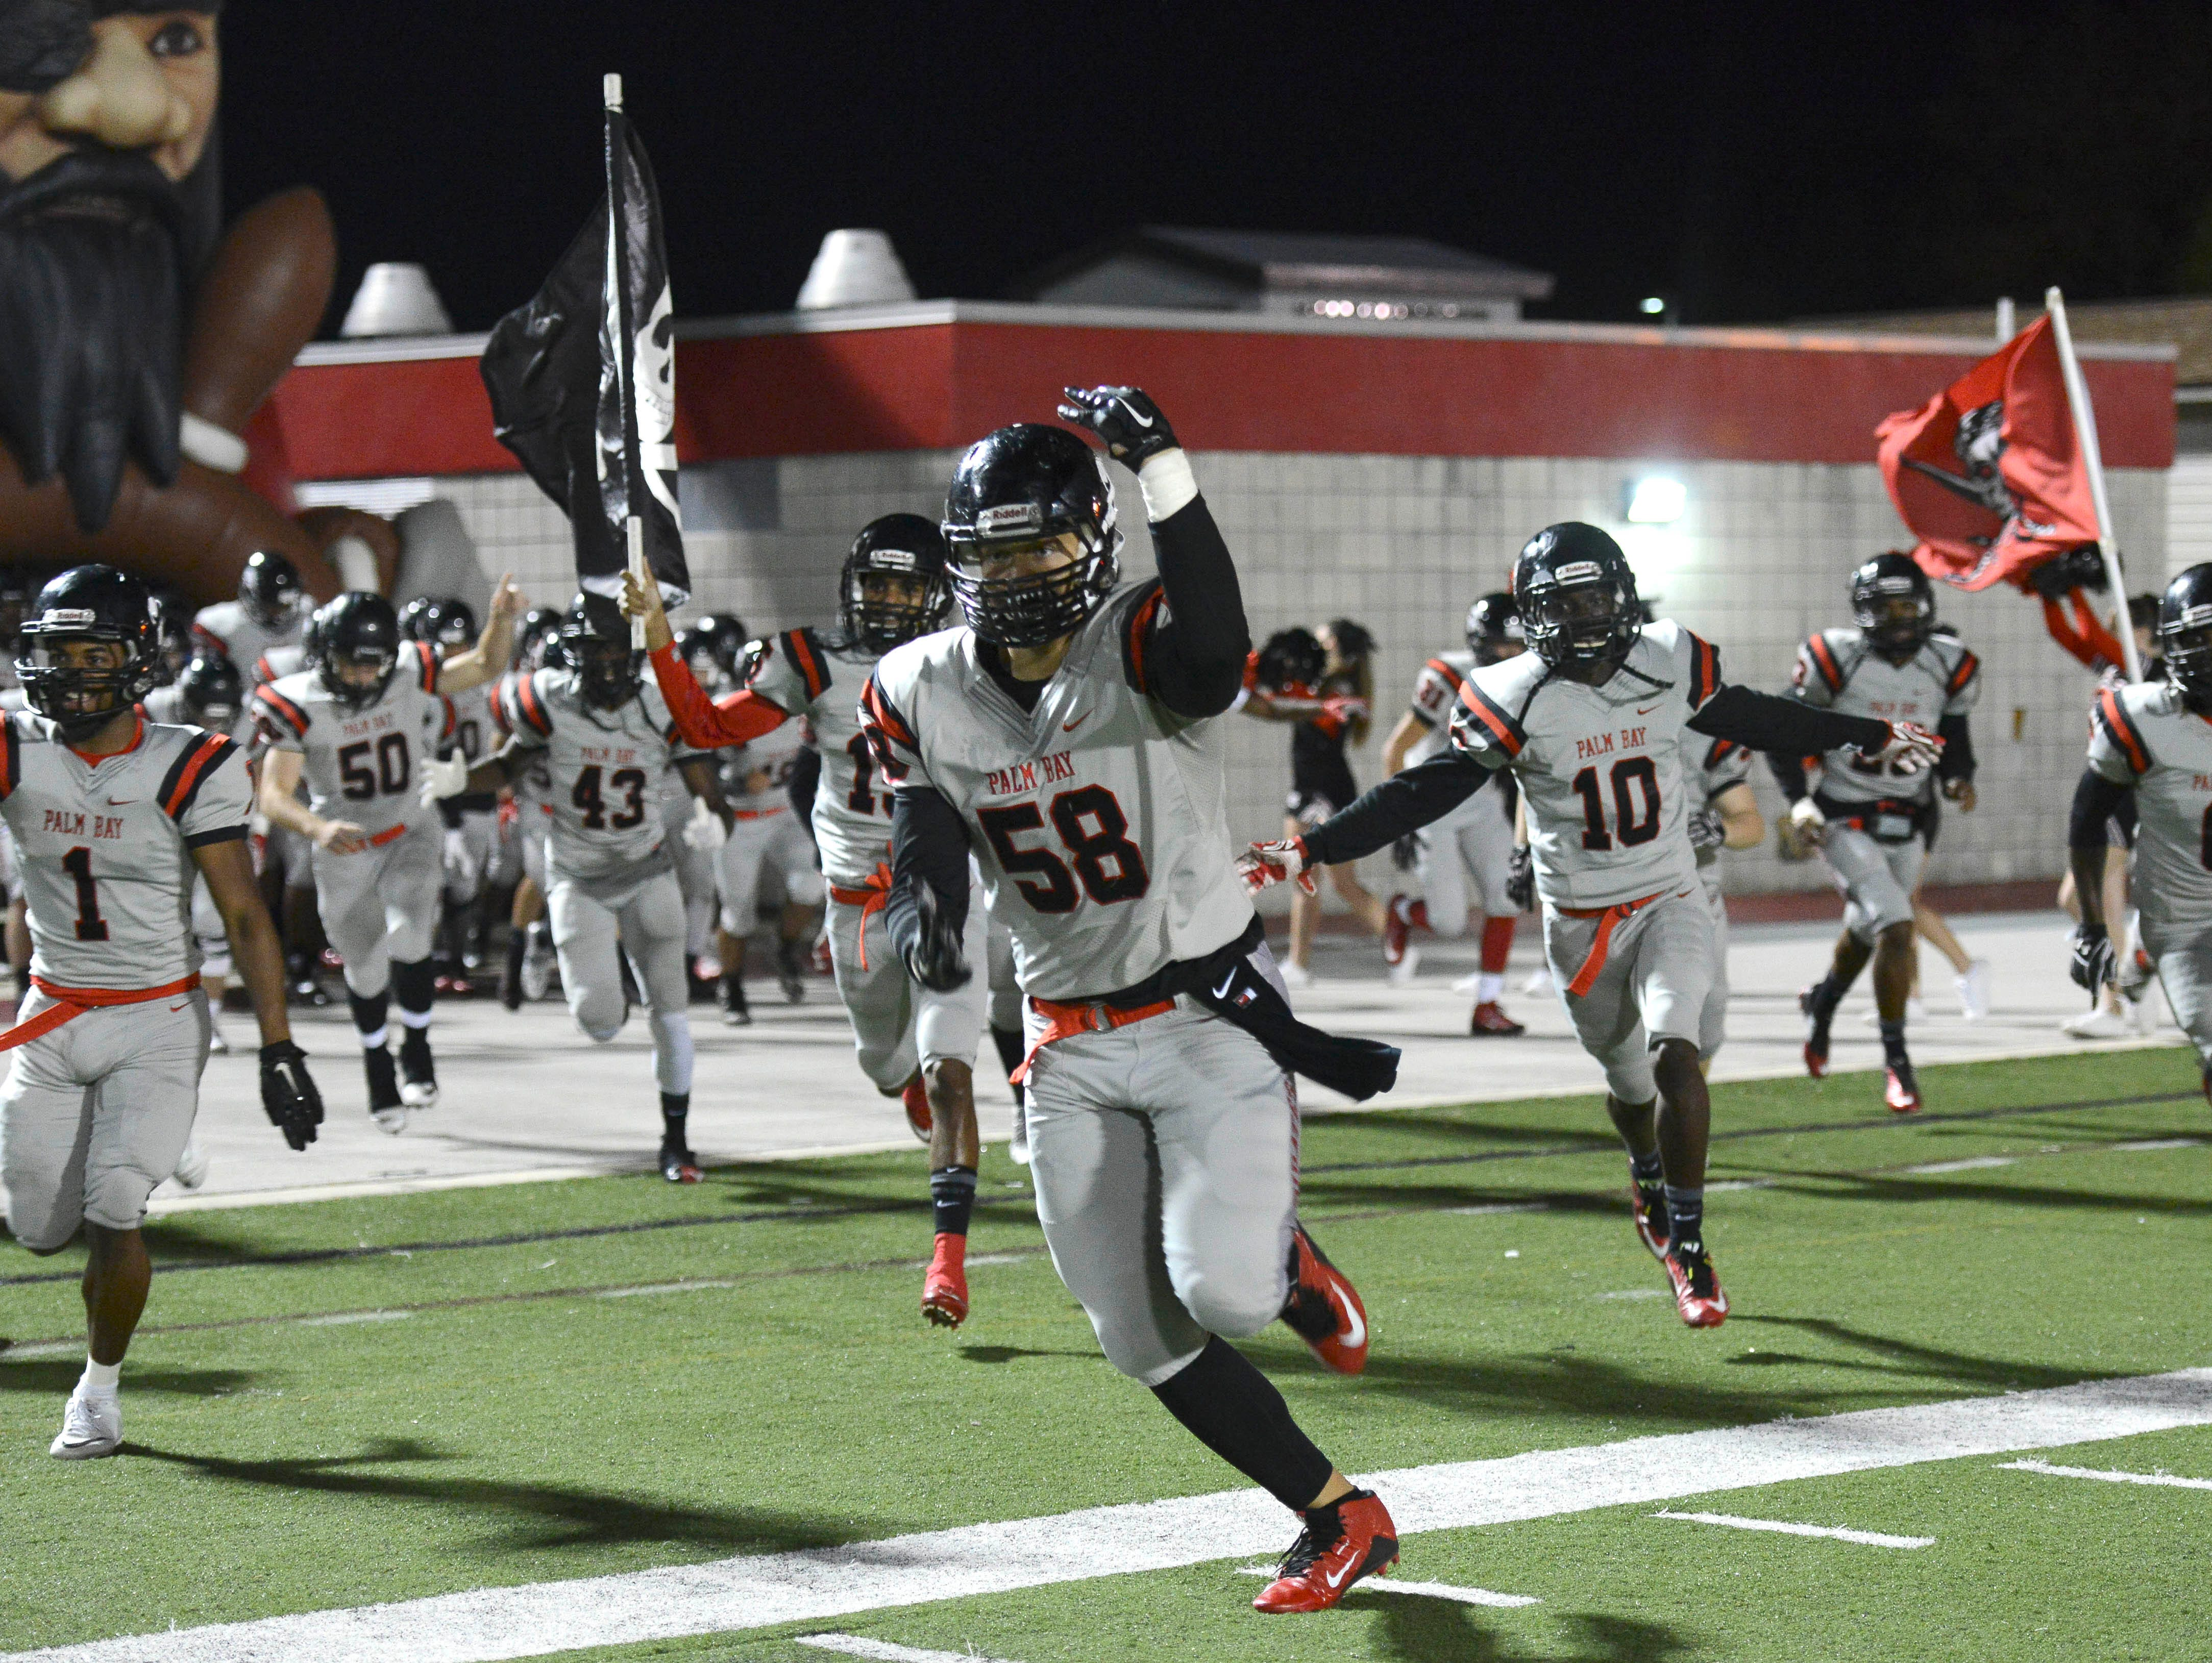 Palm Bay players take the field for Friday's game against Eustis.